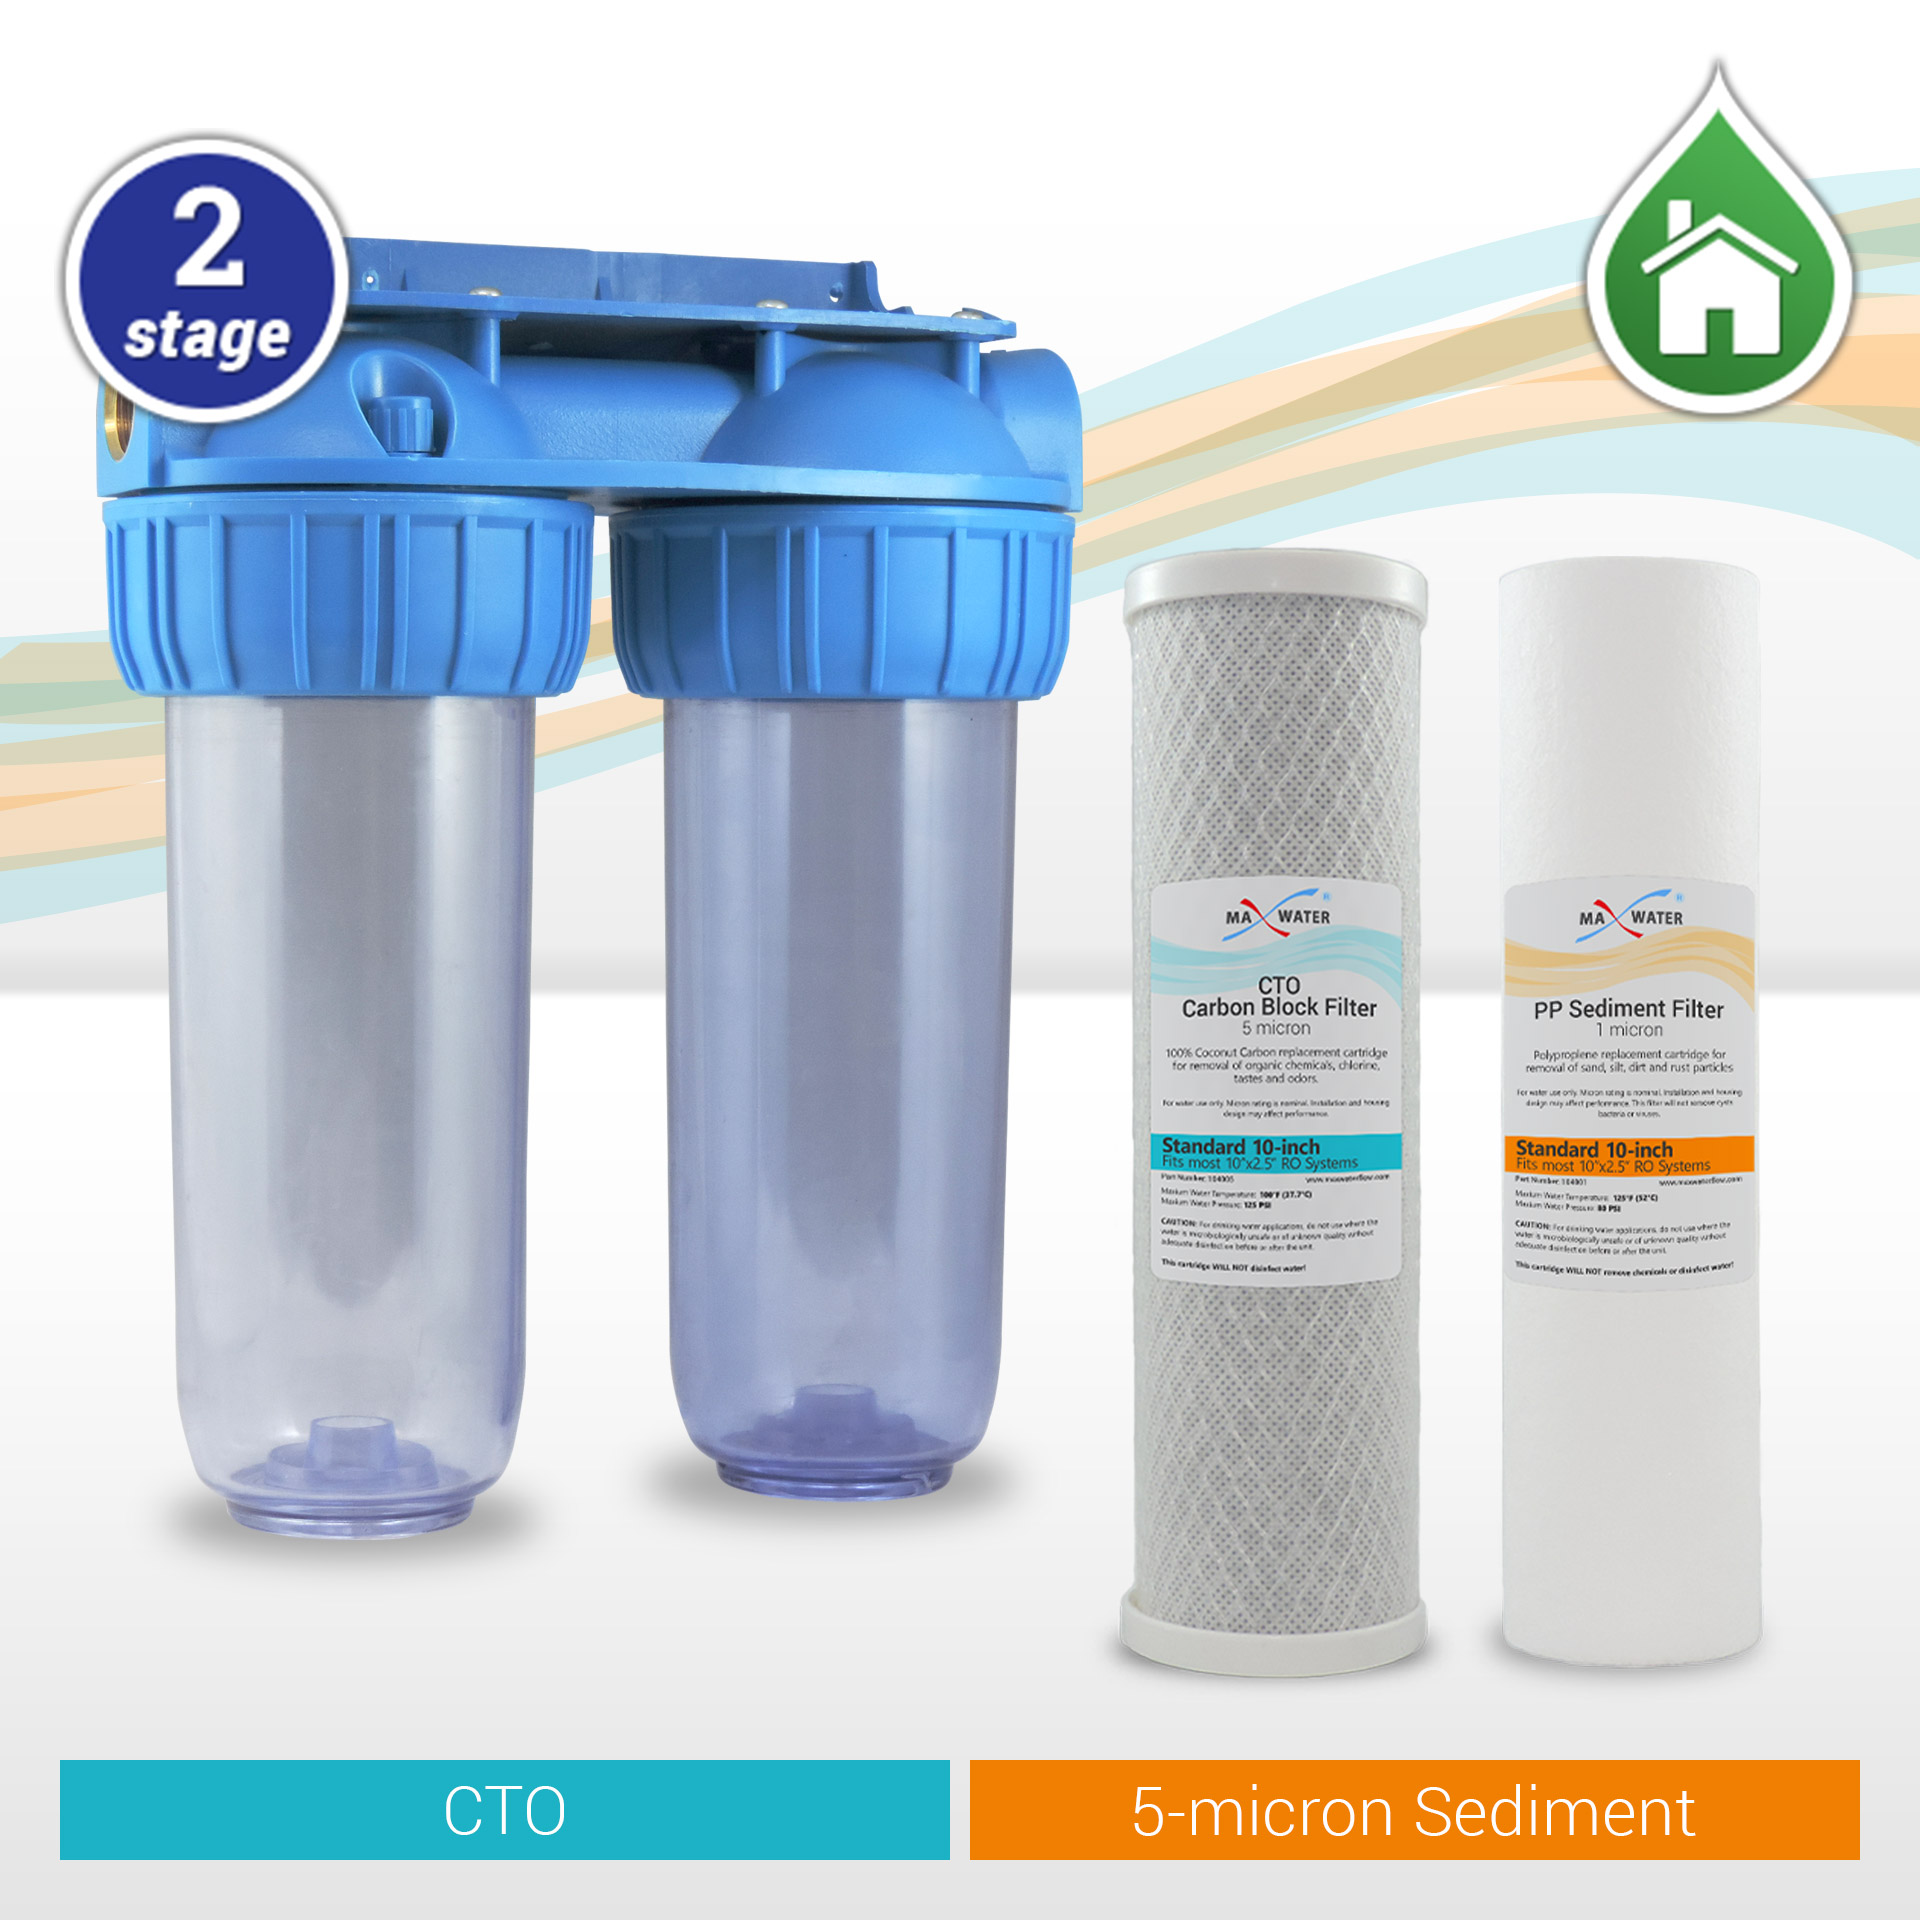 2 pc RO Replacement 5 micron PP sediment and 5 micron Carbon block filter